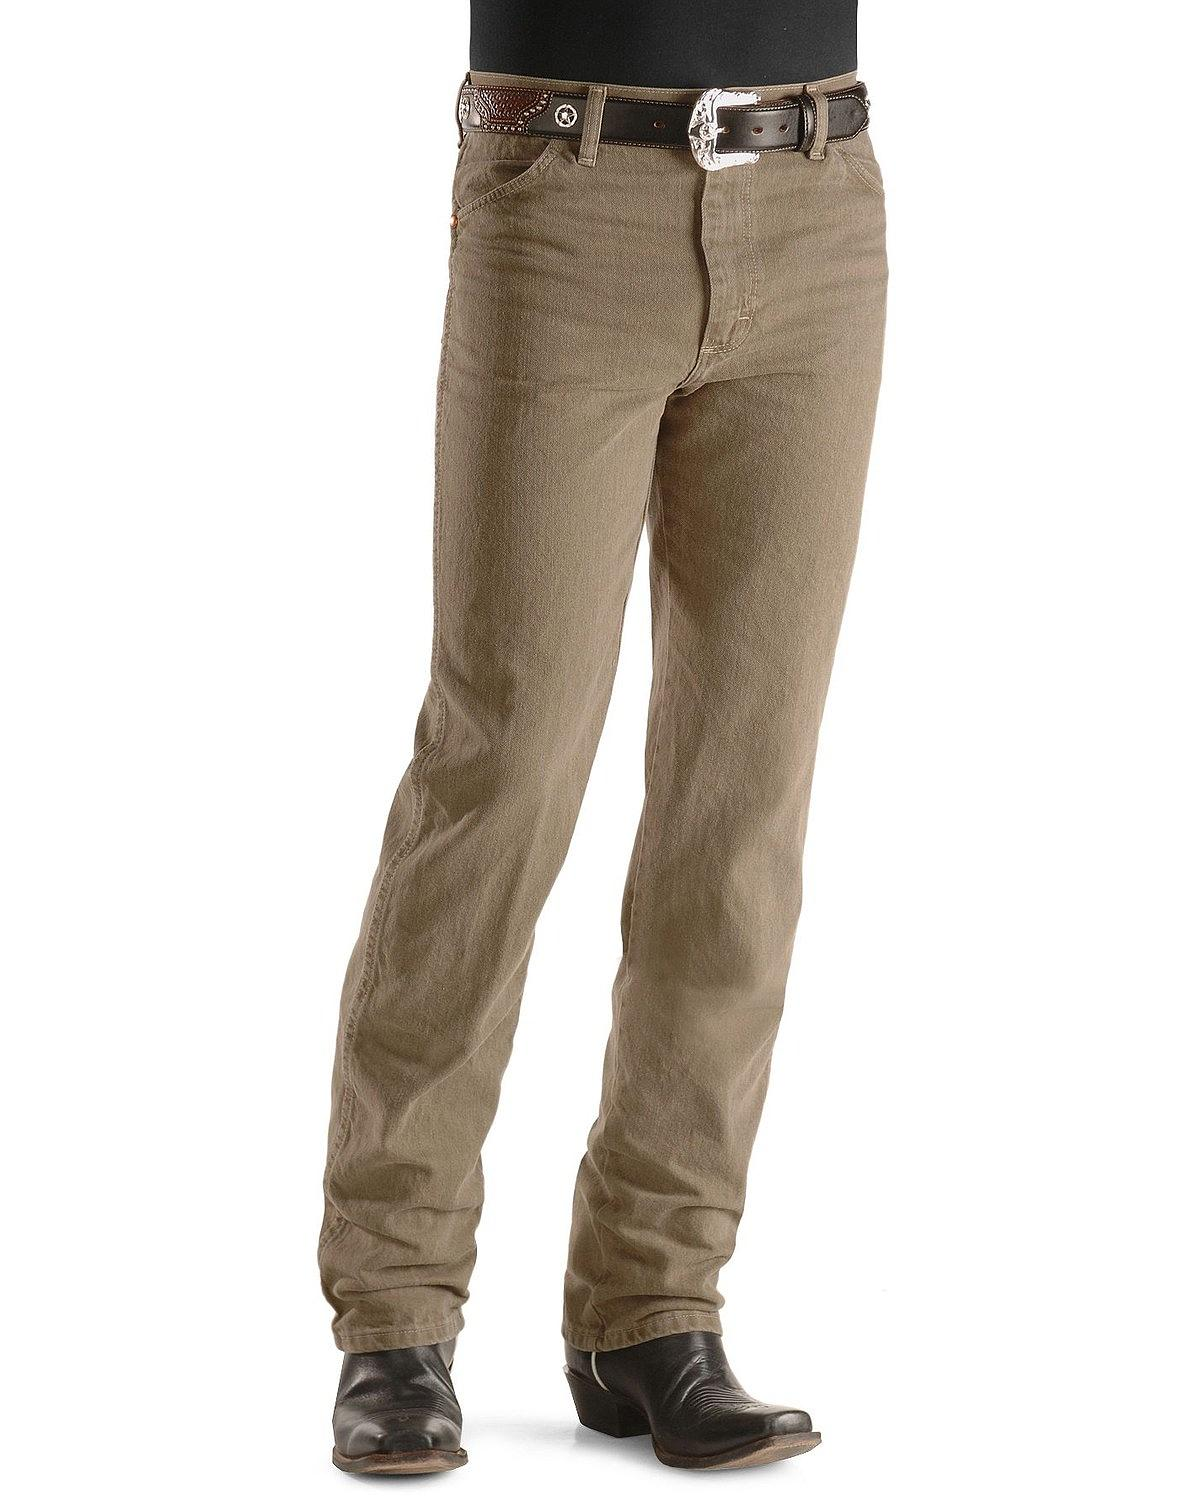 Shop Lucky Brand Hayden Straight Jeans and other name brand Jeans Apparel at The Exchange. You've earned the right to shop tax free and enjoy FREE shipping! 27x 28x 30x Show More Show Fewer. Quantity: Receive $30 off your $ purchase of select regular priced Men's and Women's Apparel, Footwear, Sunglasses and Handbags when.